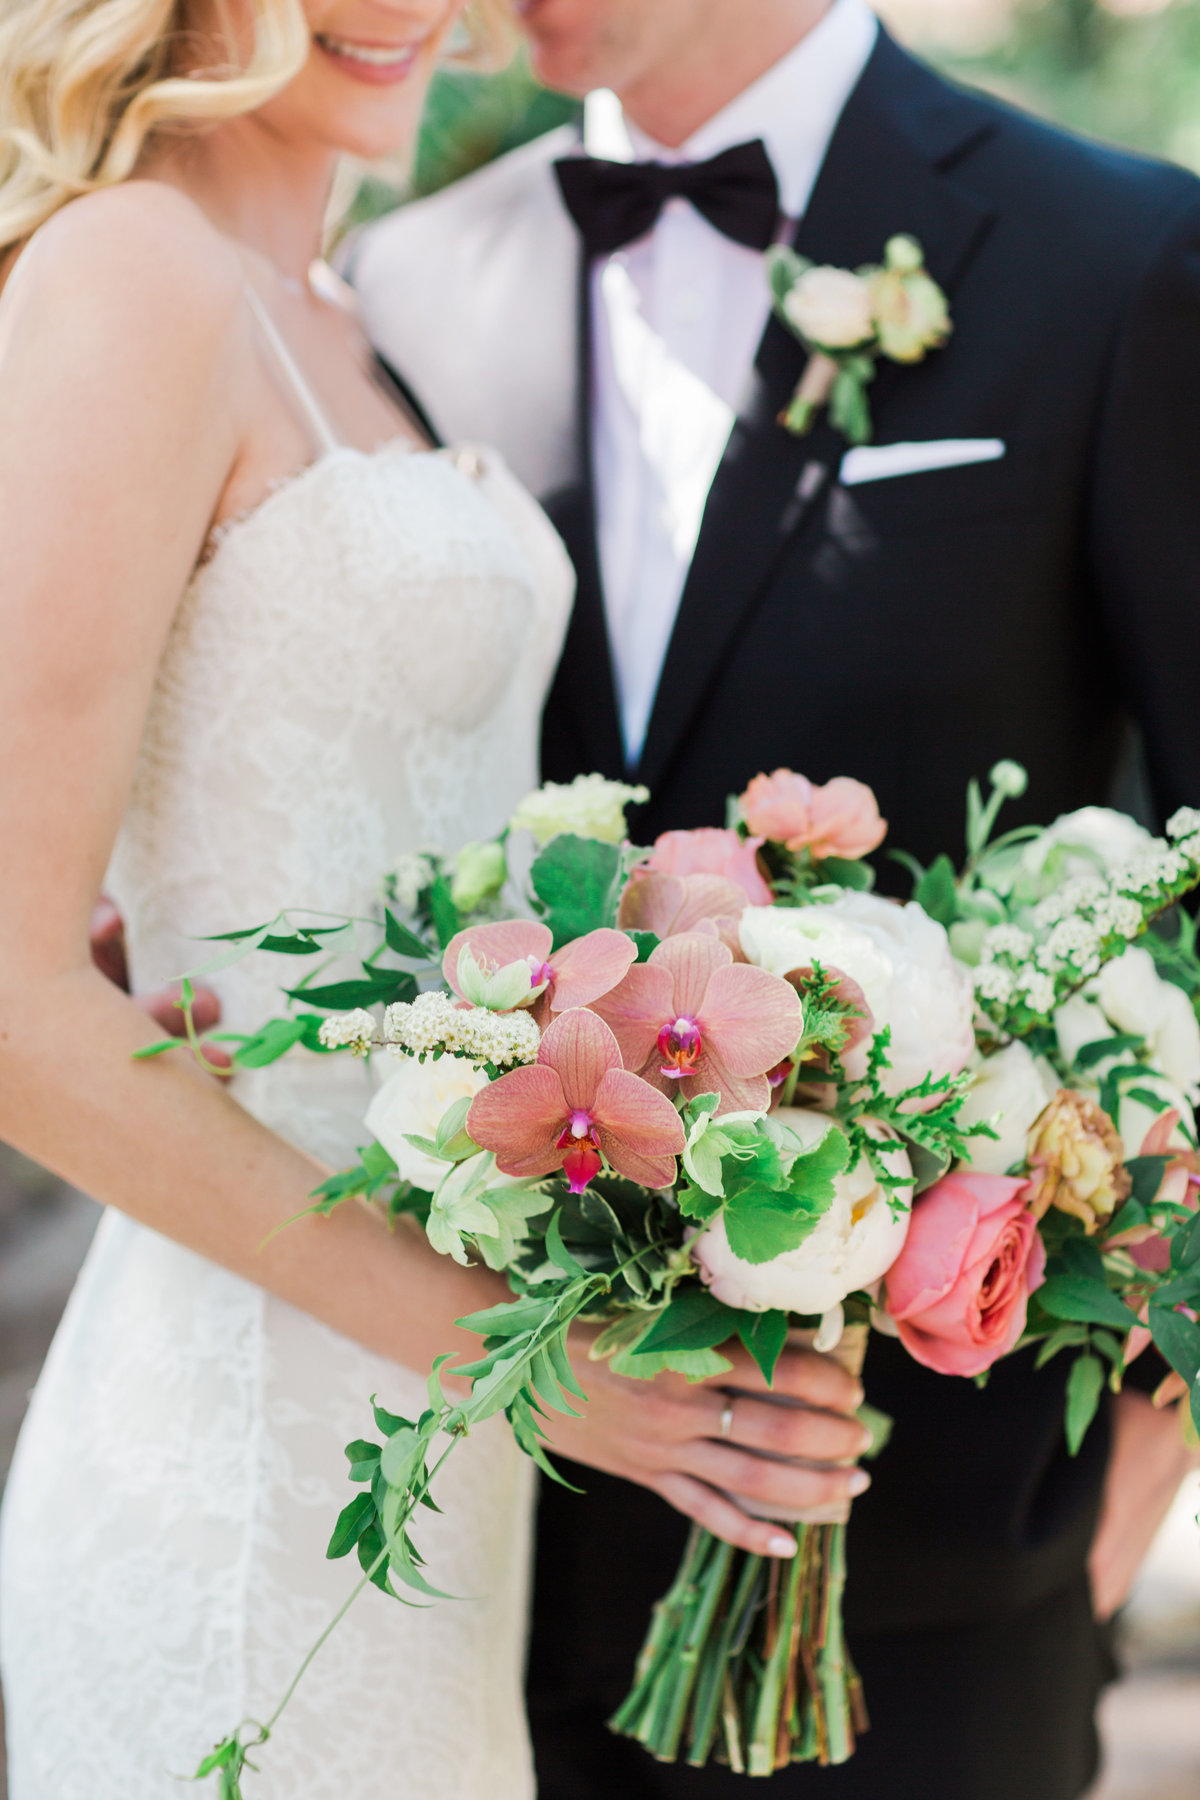 Quail_Ranch_Blush_California_Wedding_Valorie_Darling_Photography - 62 of 151